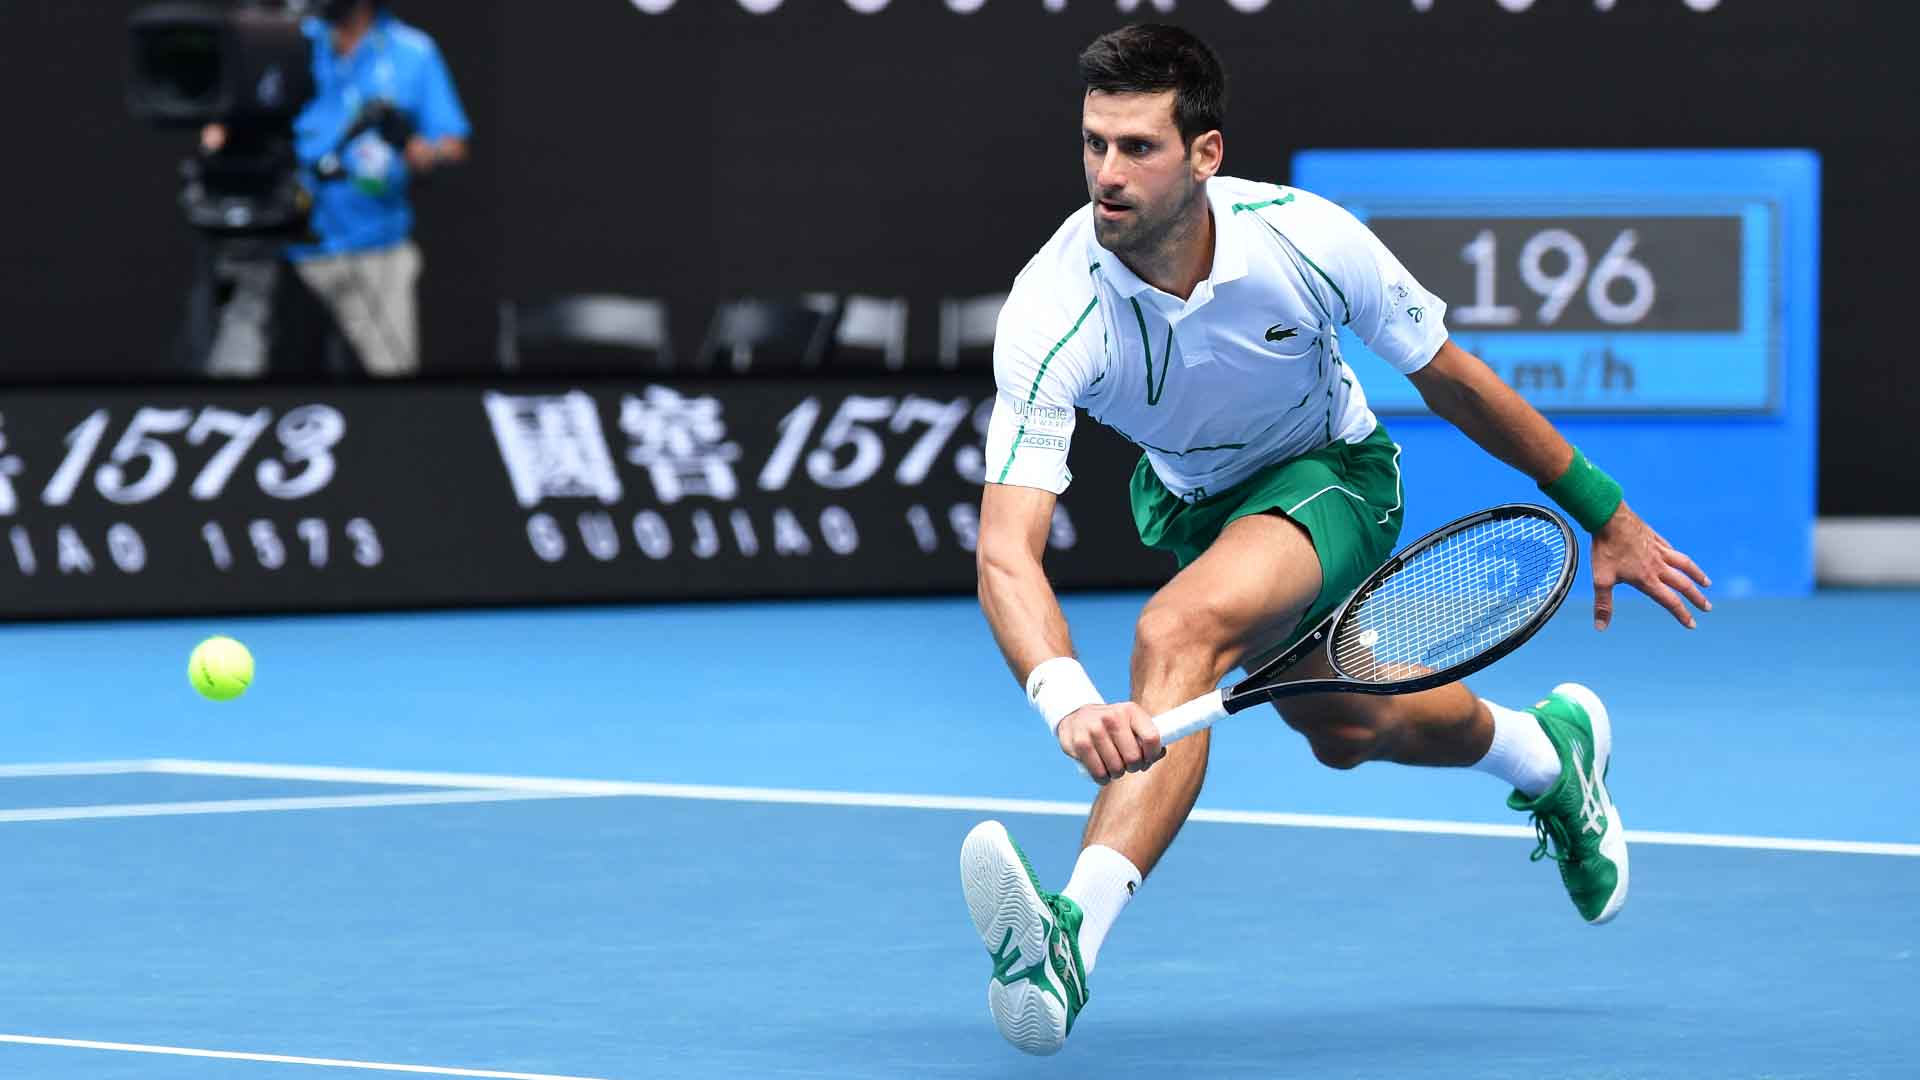 Novak Djokovic is aiming to win a record-extending eighth Australian Open title.